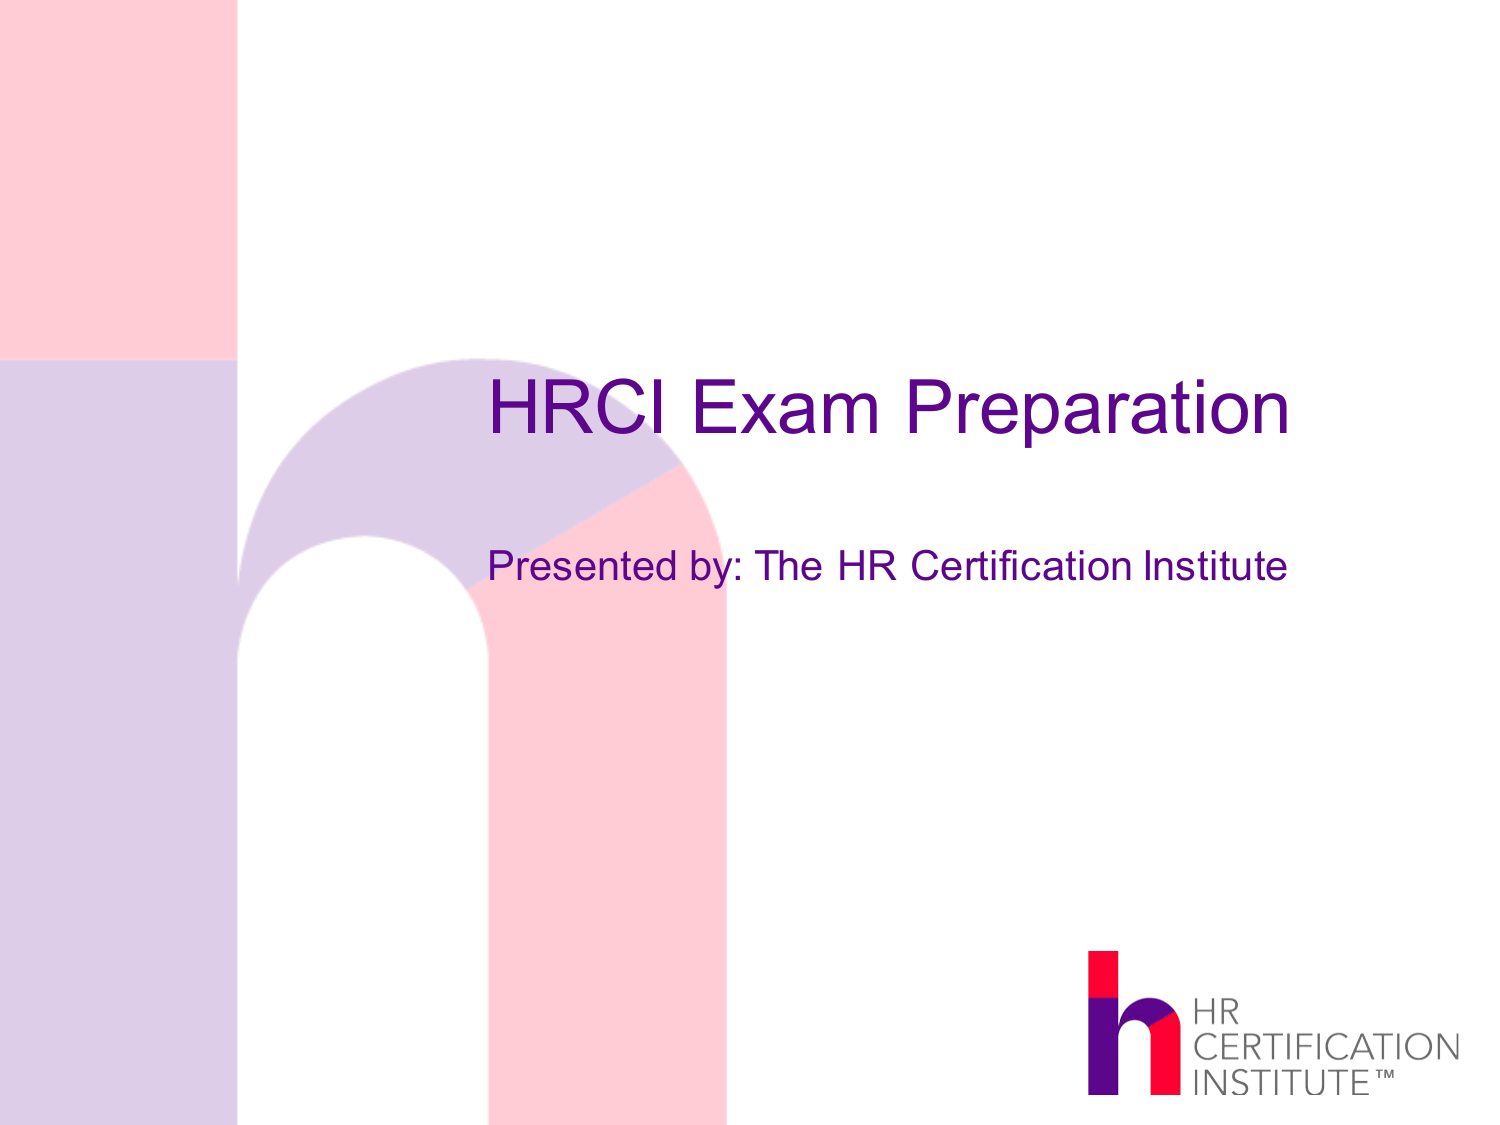 Hrci Exam Preparation Resources